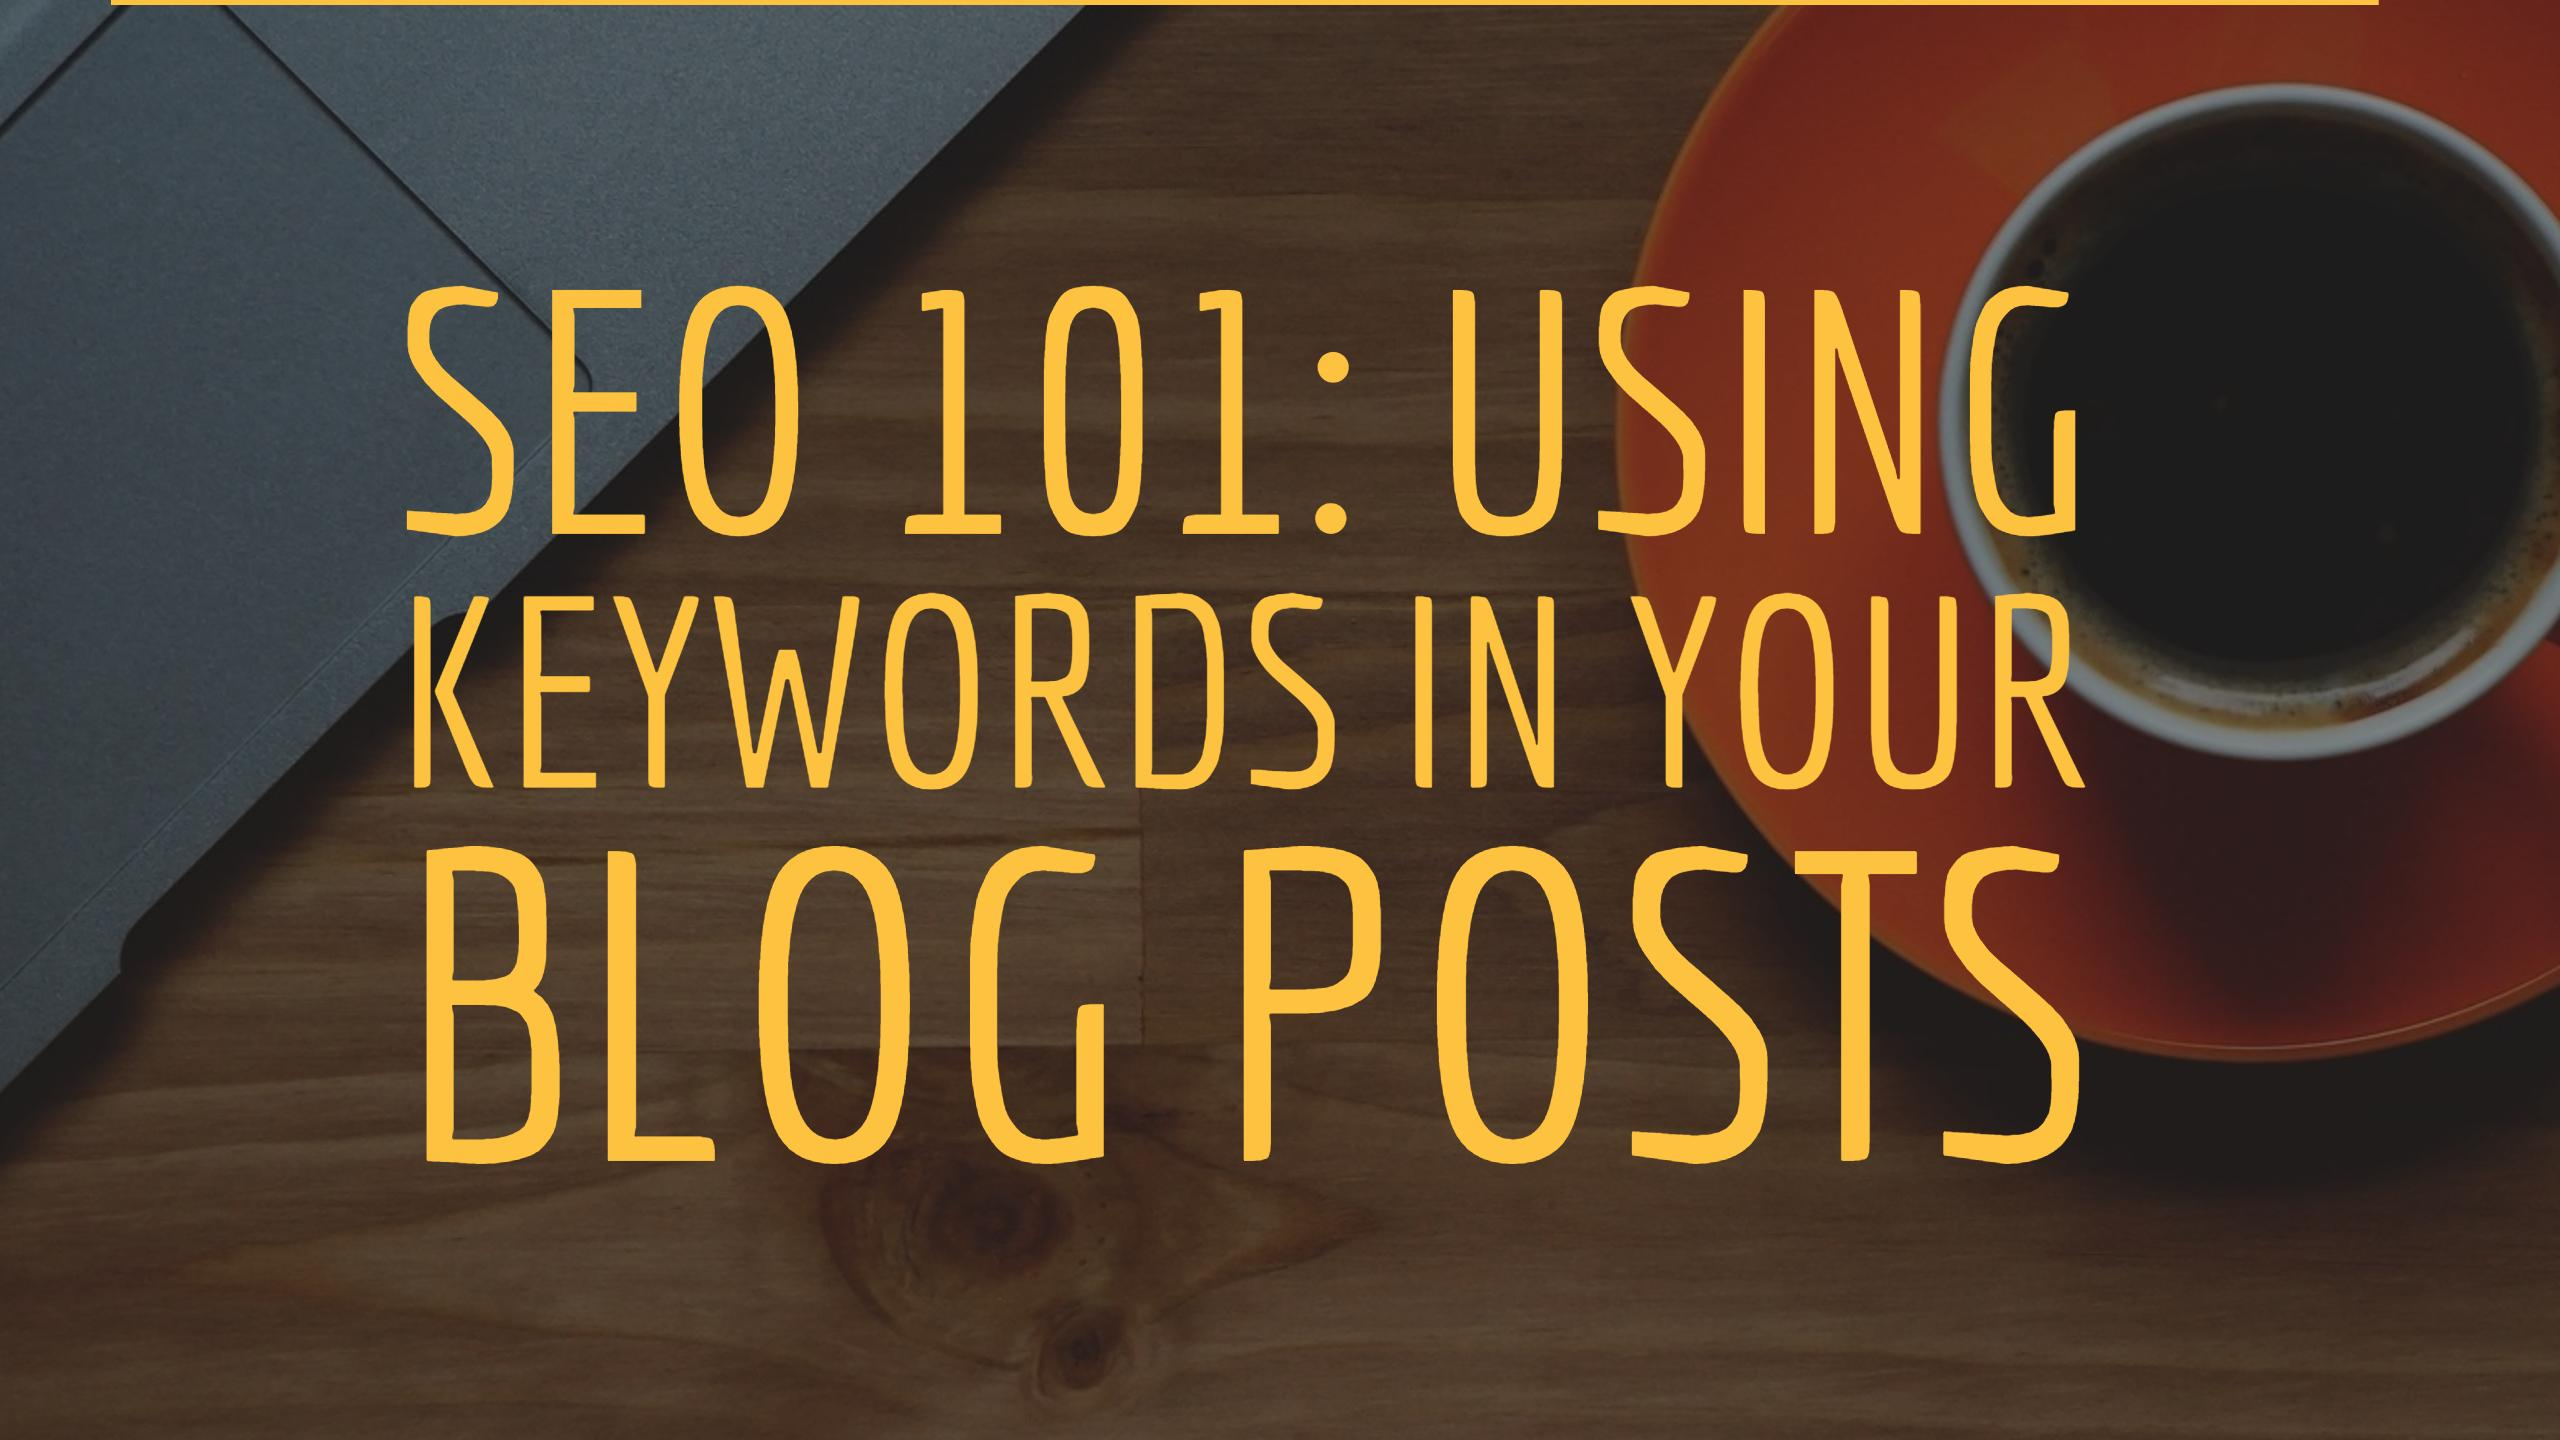 SEO 101: Using Keywords in Your Blog Posts